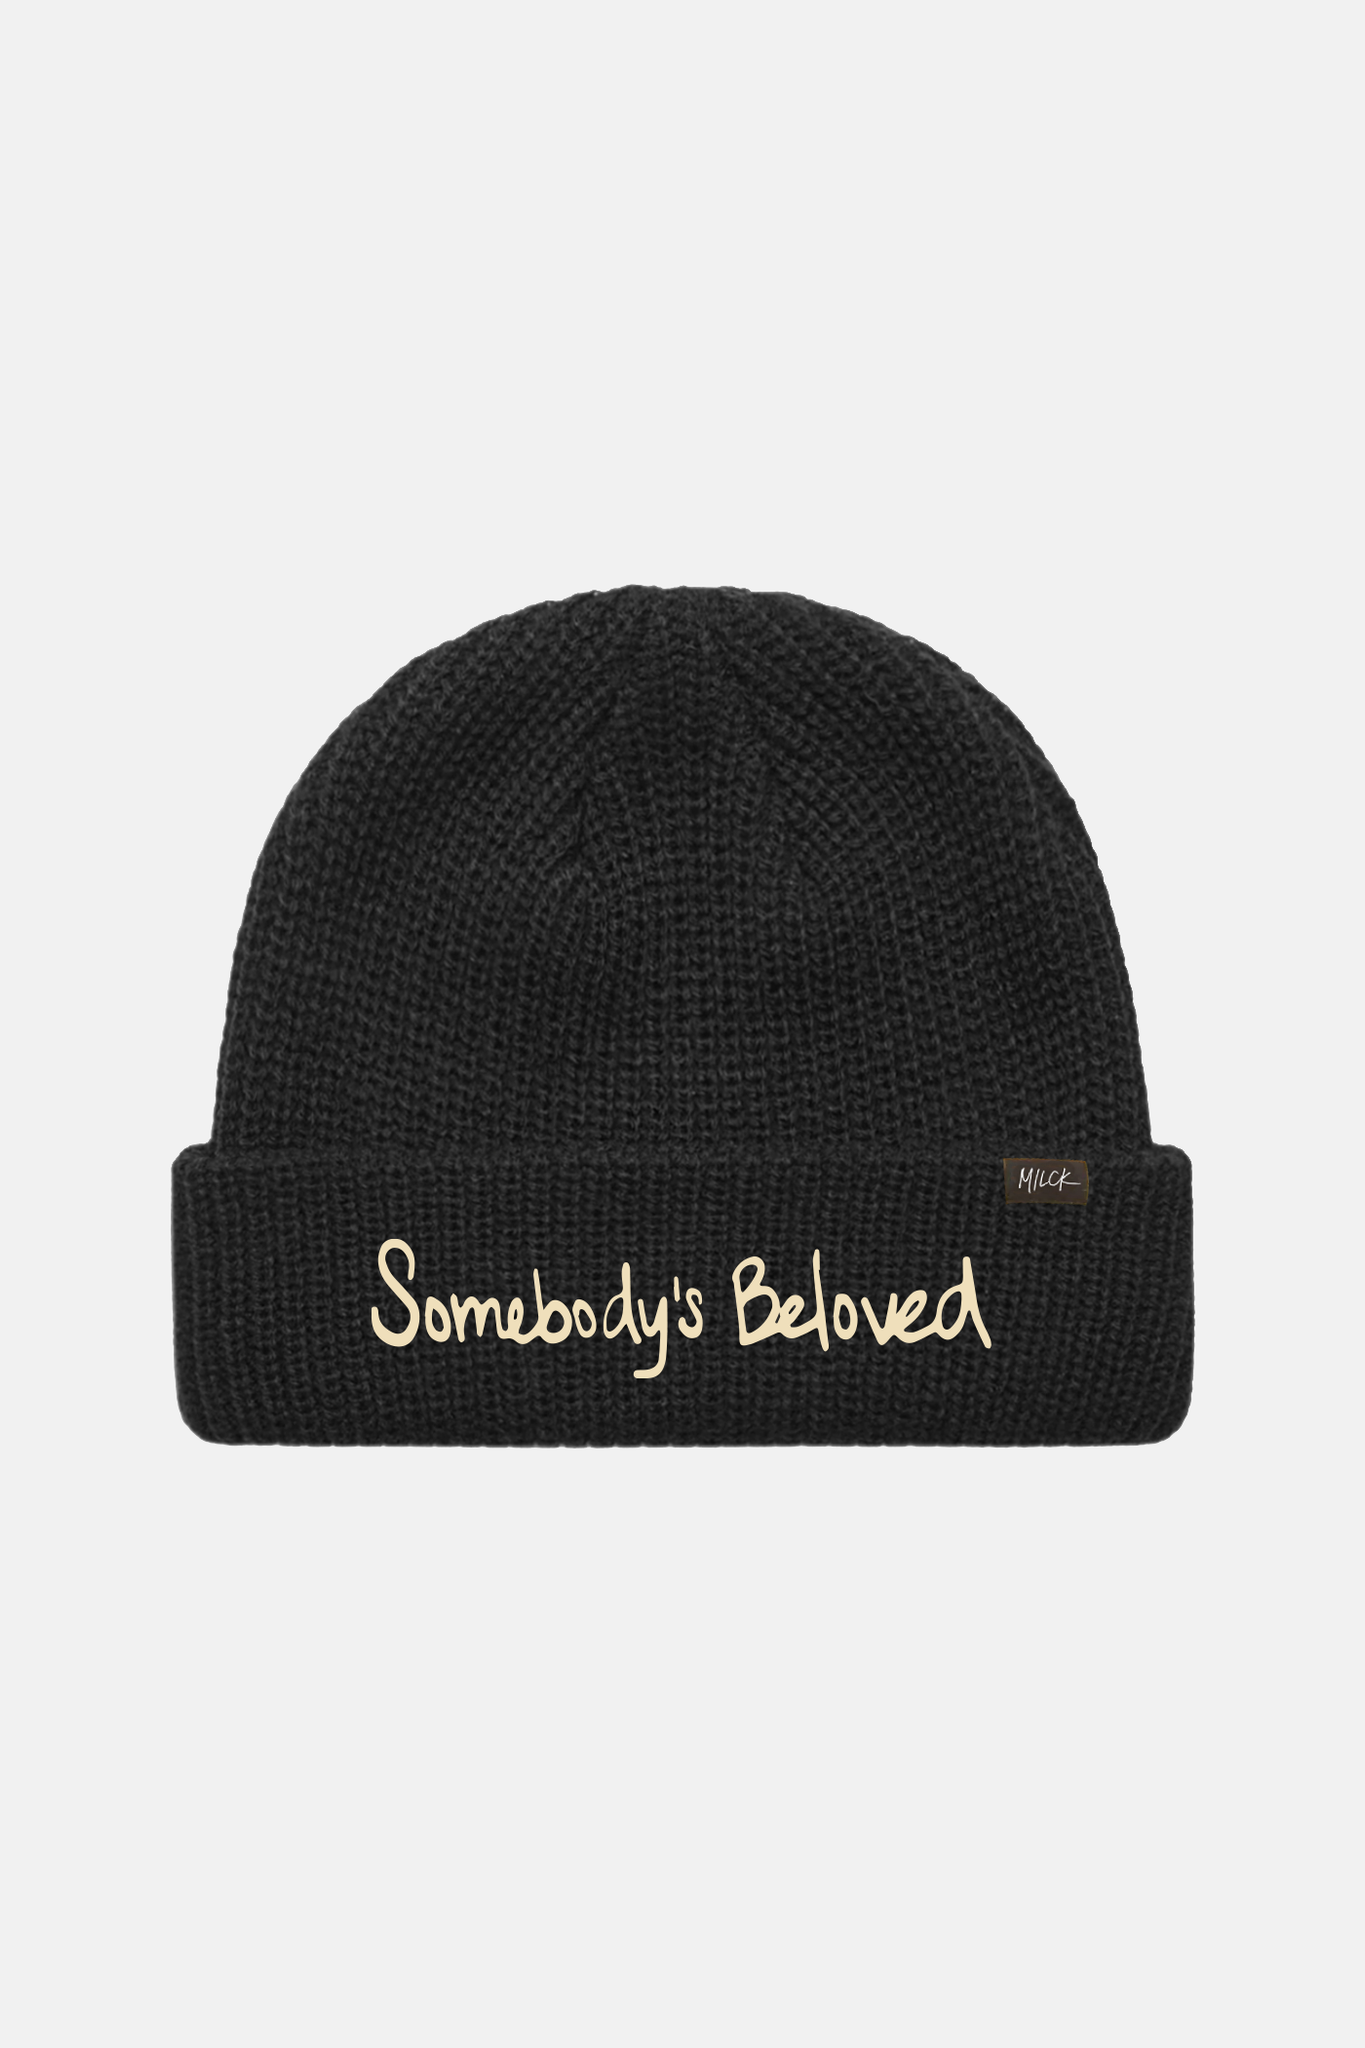 MILCK | Somebody's Beloved Black Beanie